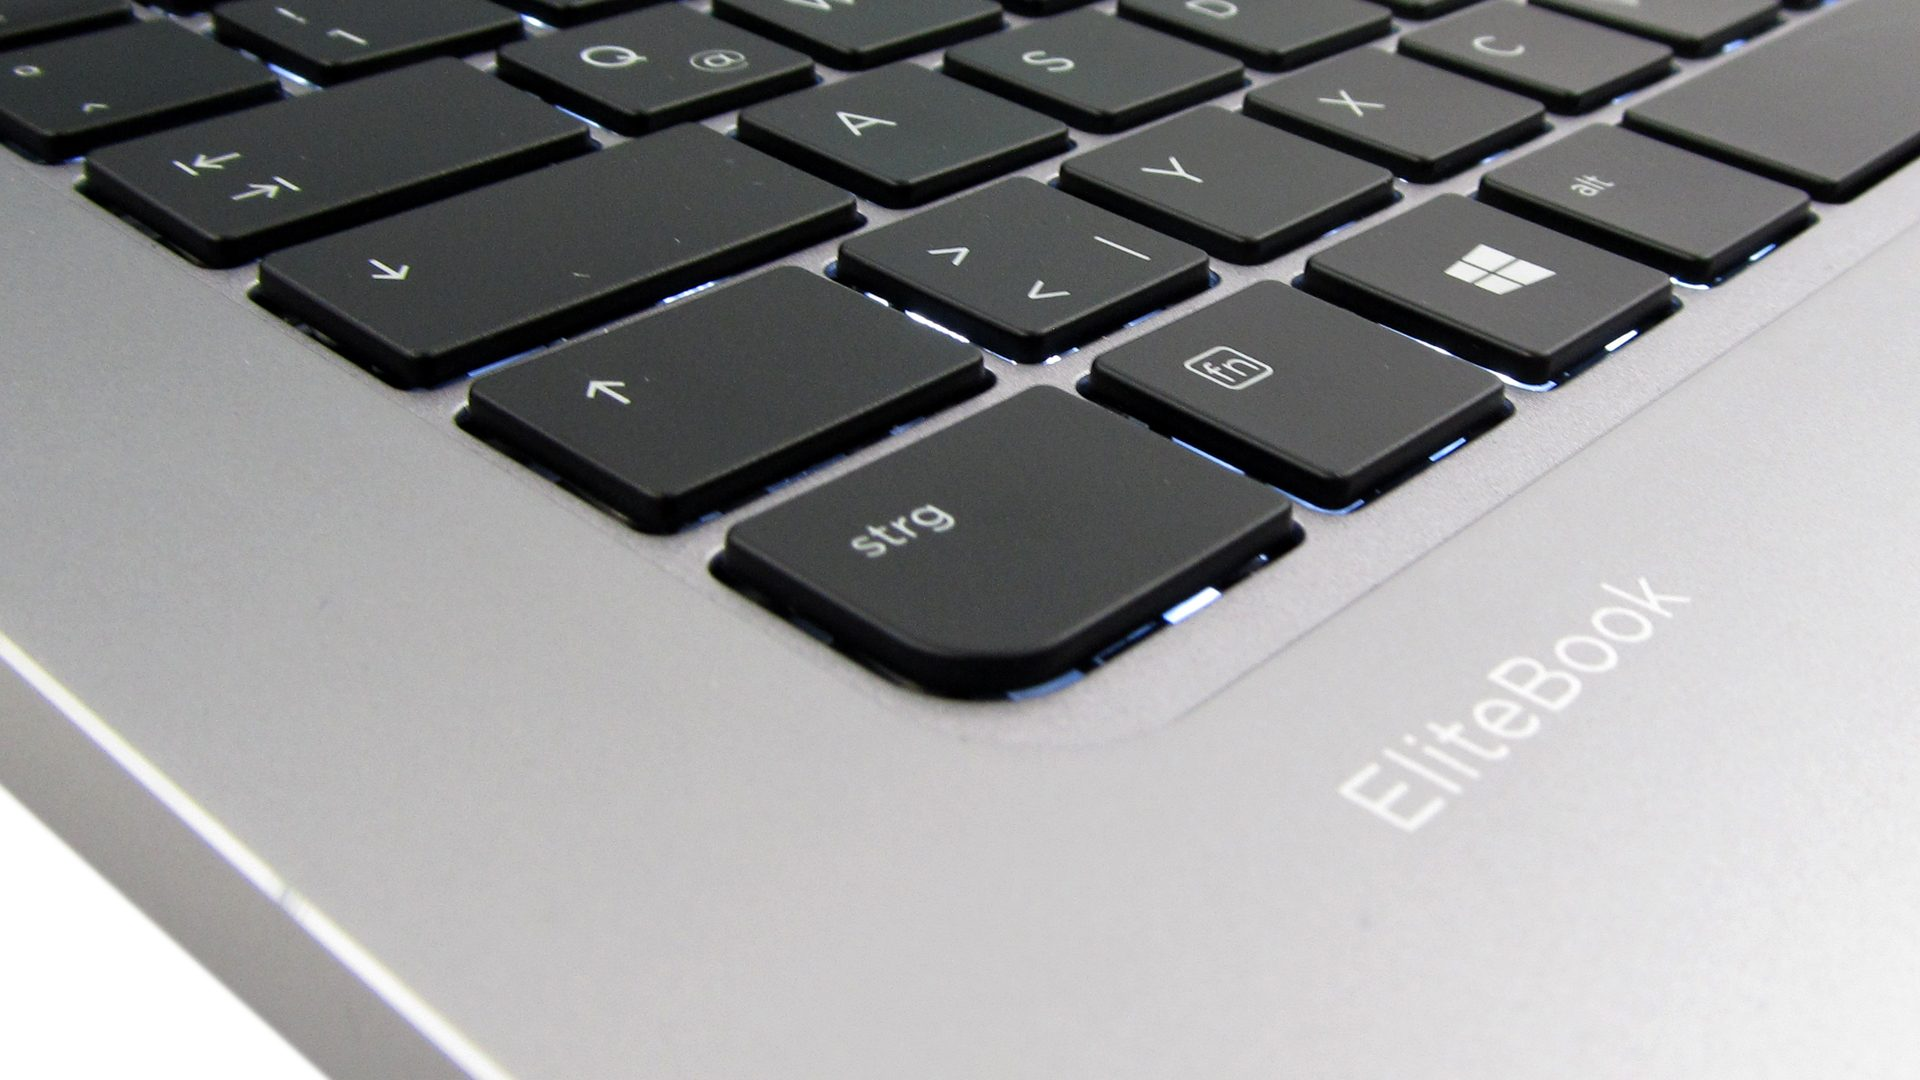 HP-Elitebook-1030-G1-X2F03EA-Tastatur_5